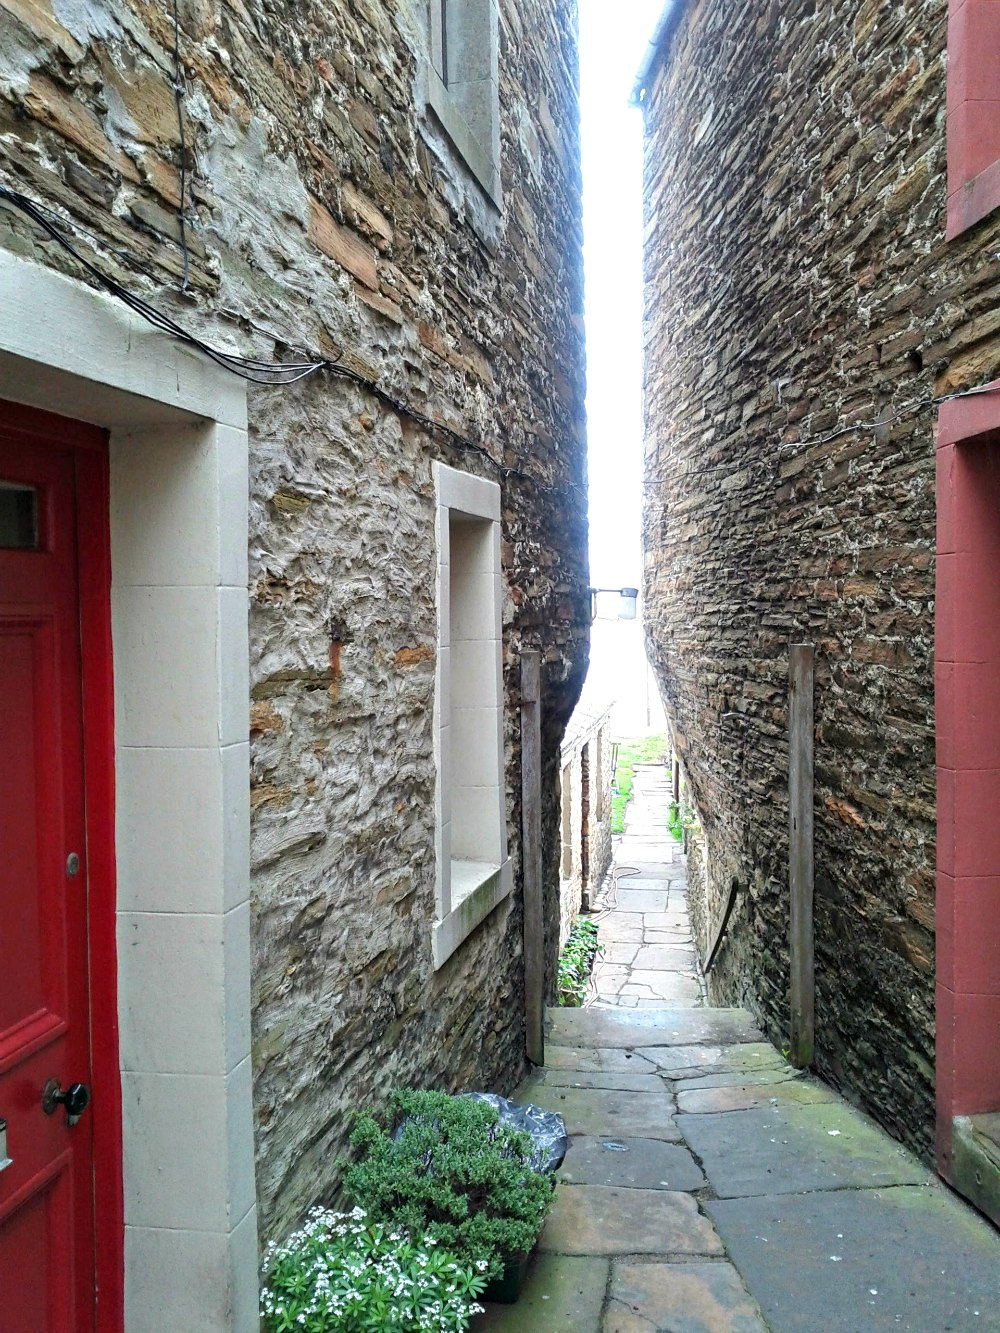 Many of the Stromness houses are built close together